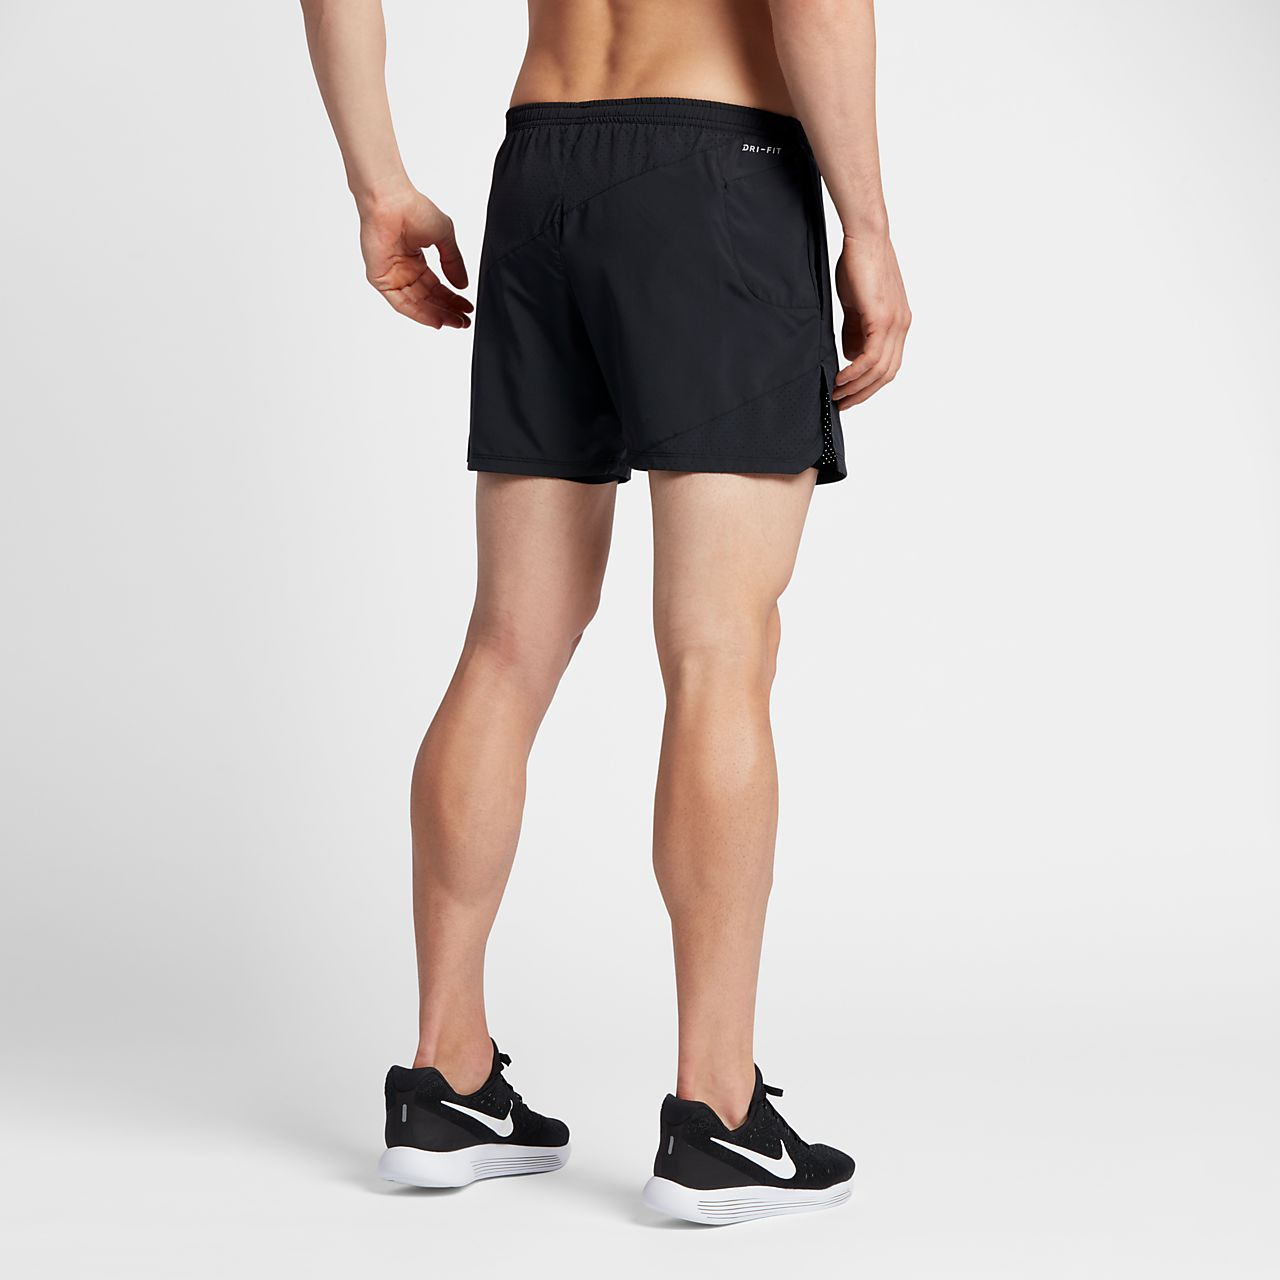 nike mens 5 inch 2 in 1 shorts